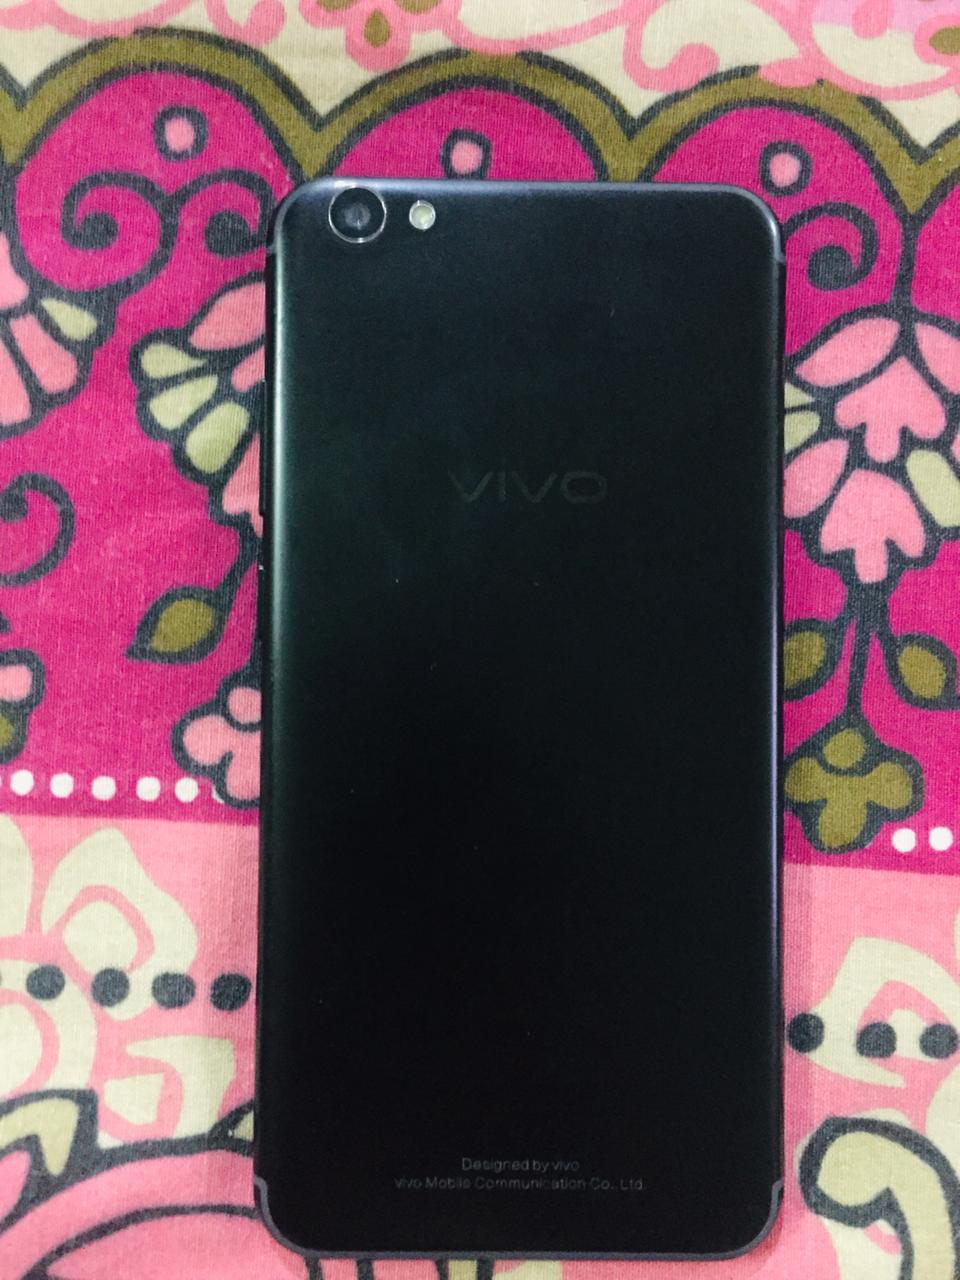 Vivo v5s in 10/10 condition with box - photo 2